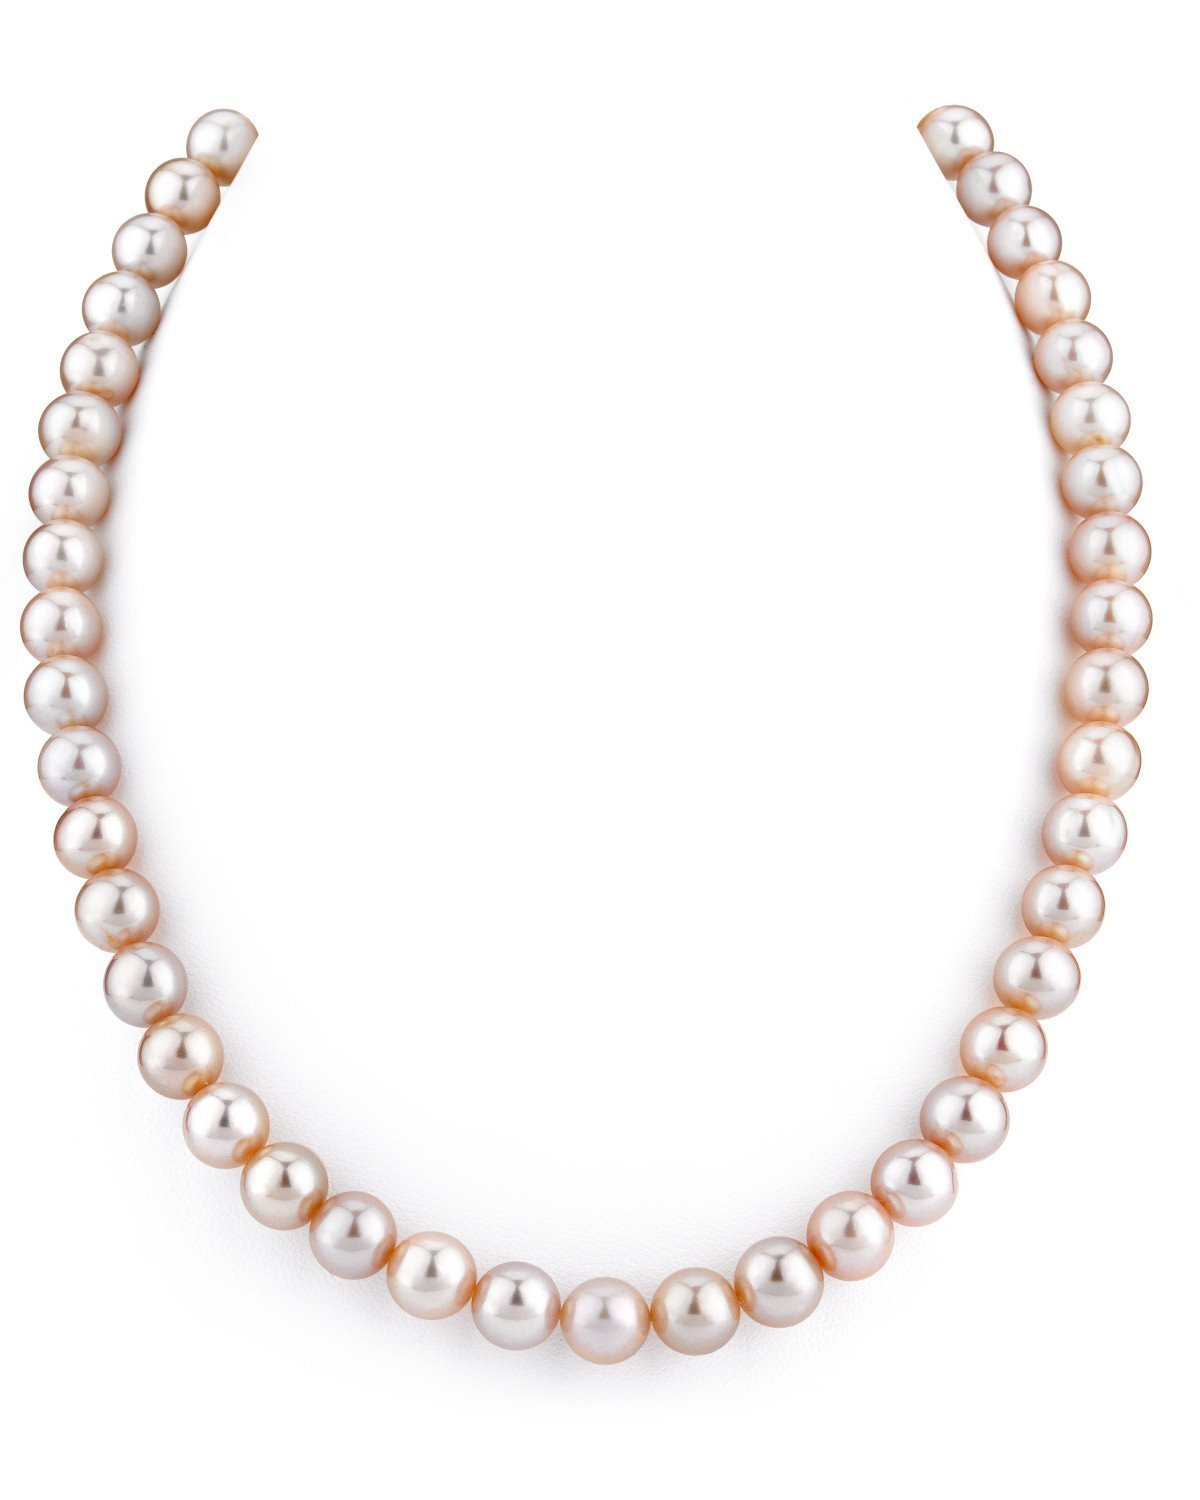 THE PEARL SOURCE 14K Gold 8-9mm AAAA Quality Pink Freshwater Cultured Pearl Necklace for Women in 17'' Princess Length